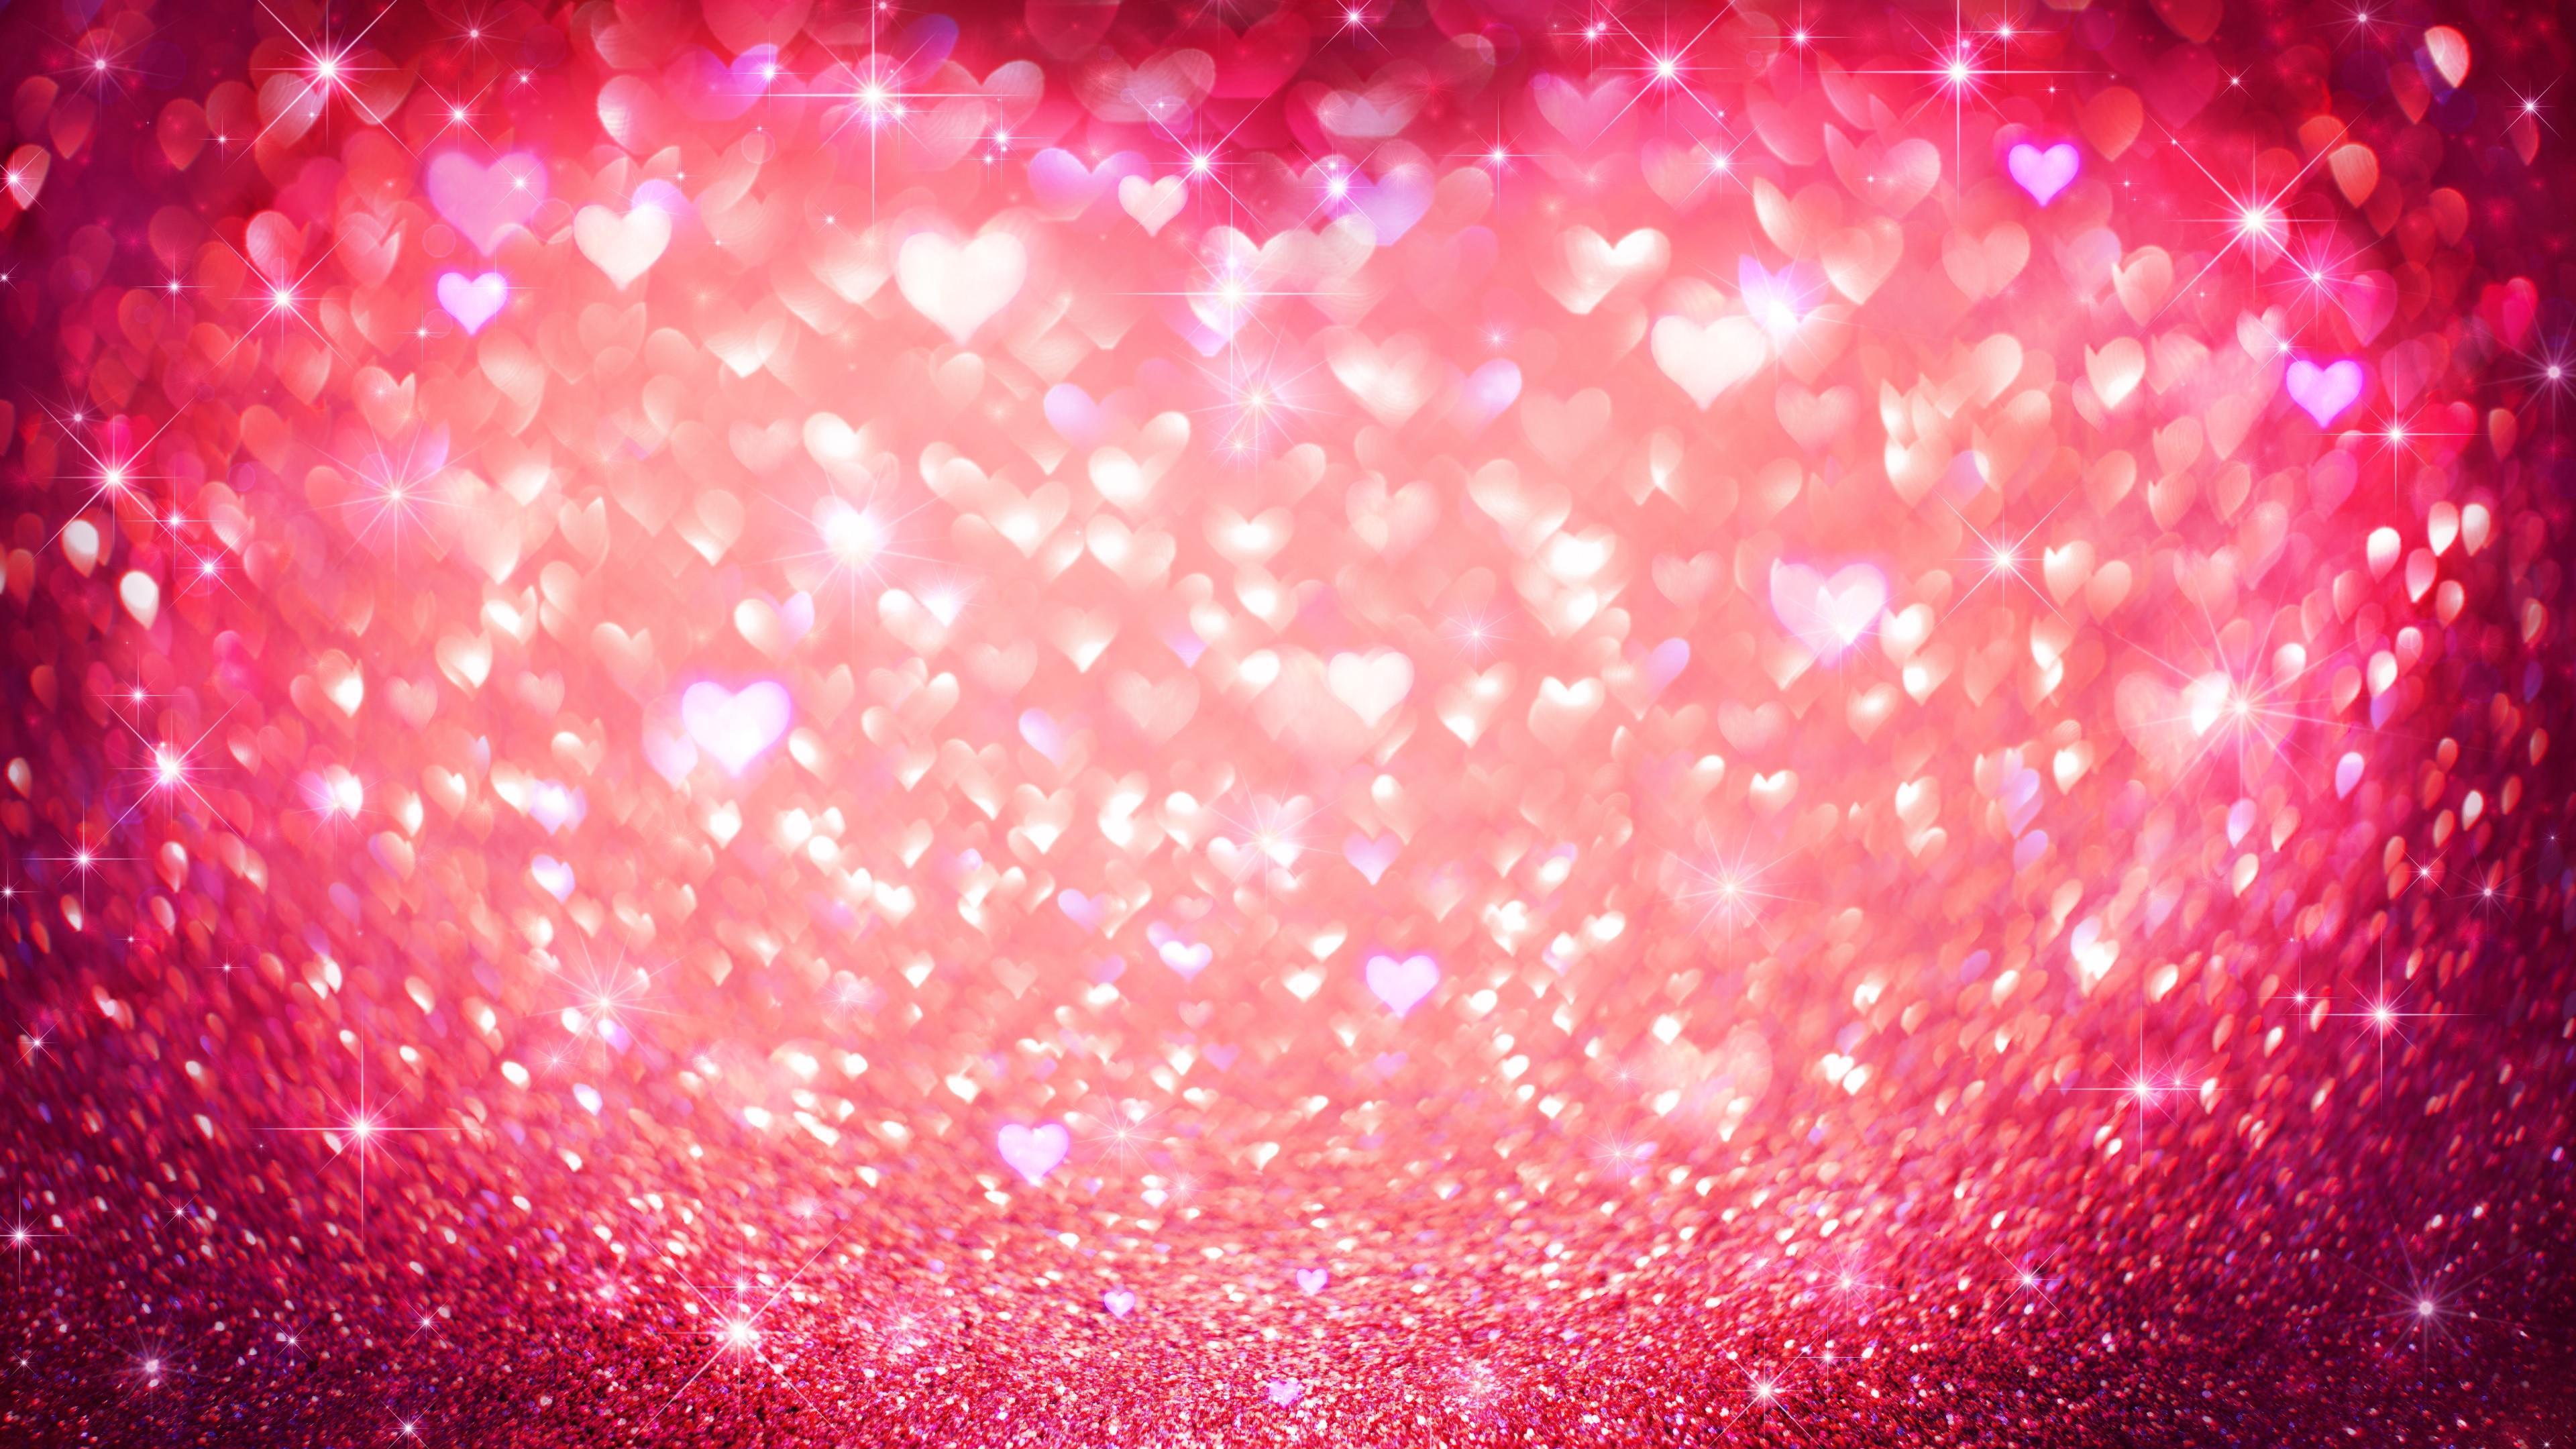 Red hearts with glitter wallpaper